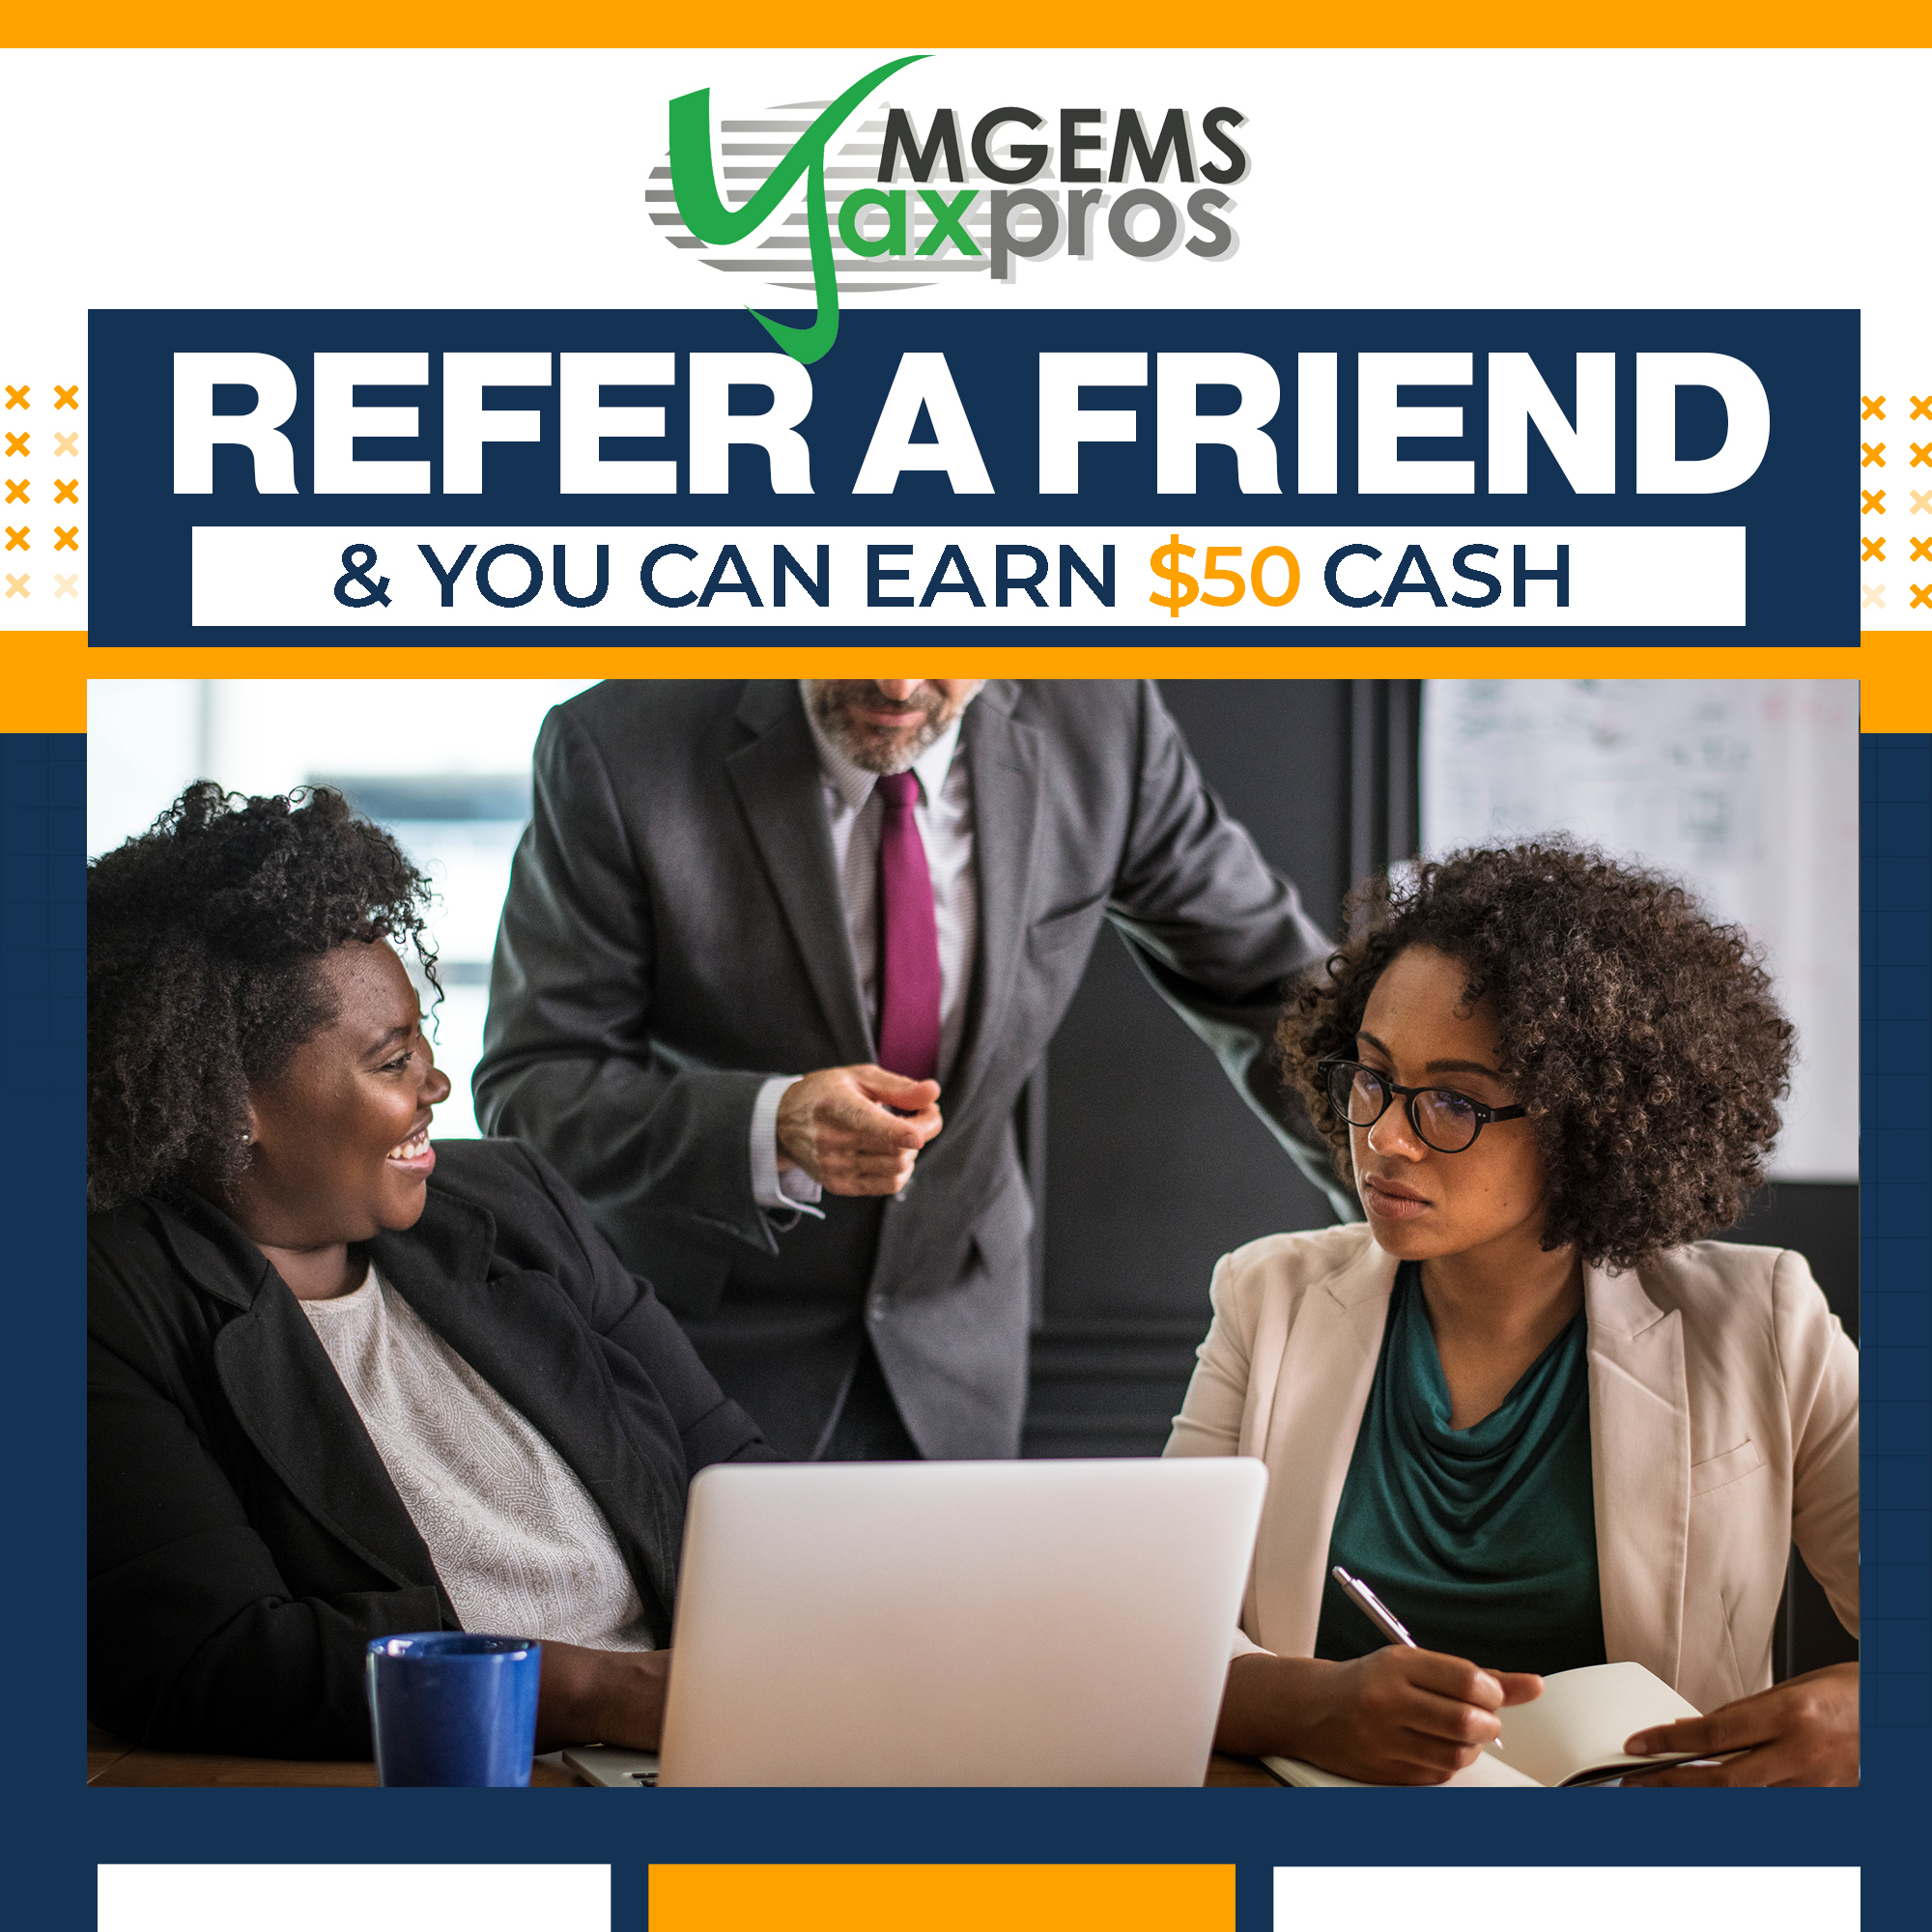 MGEMS-Tax-Pros-Referral-Contest